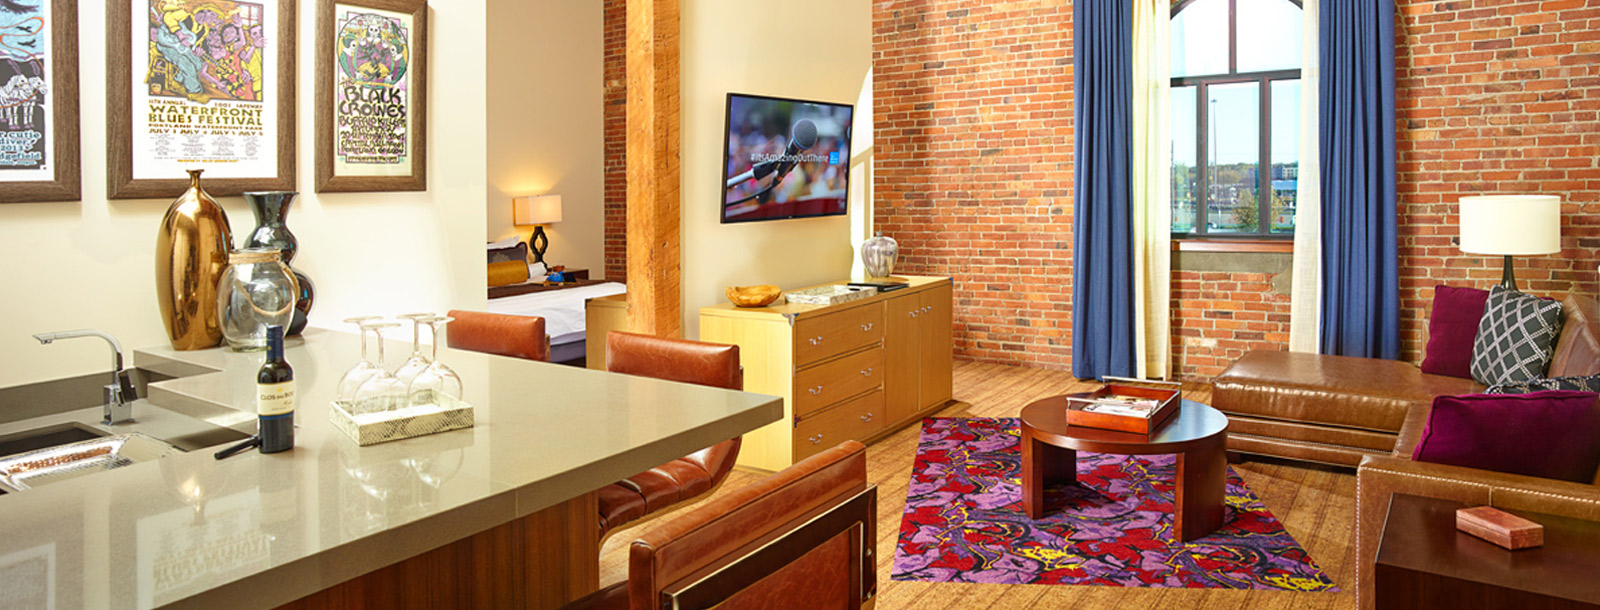 sioux city hotel rooms suites